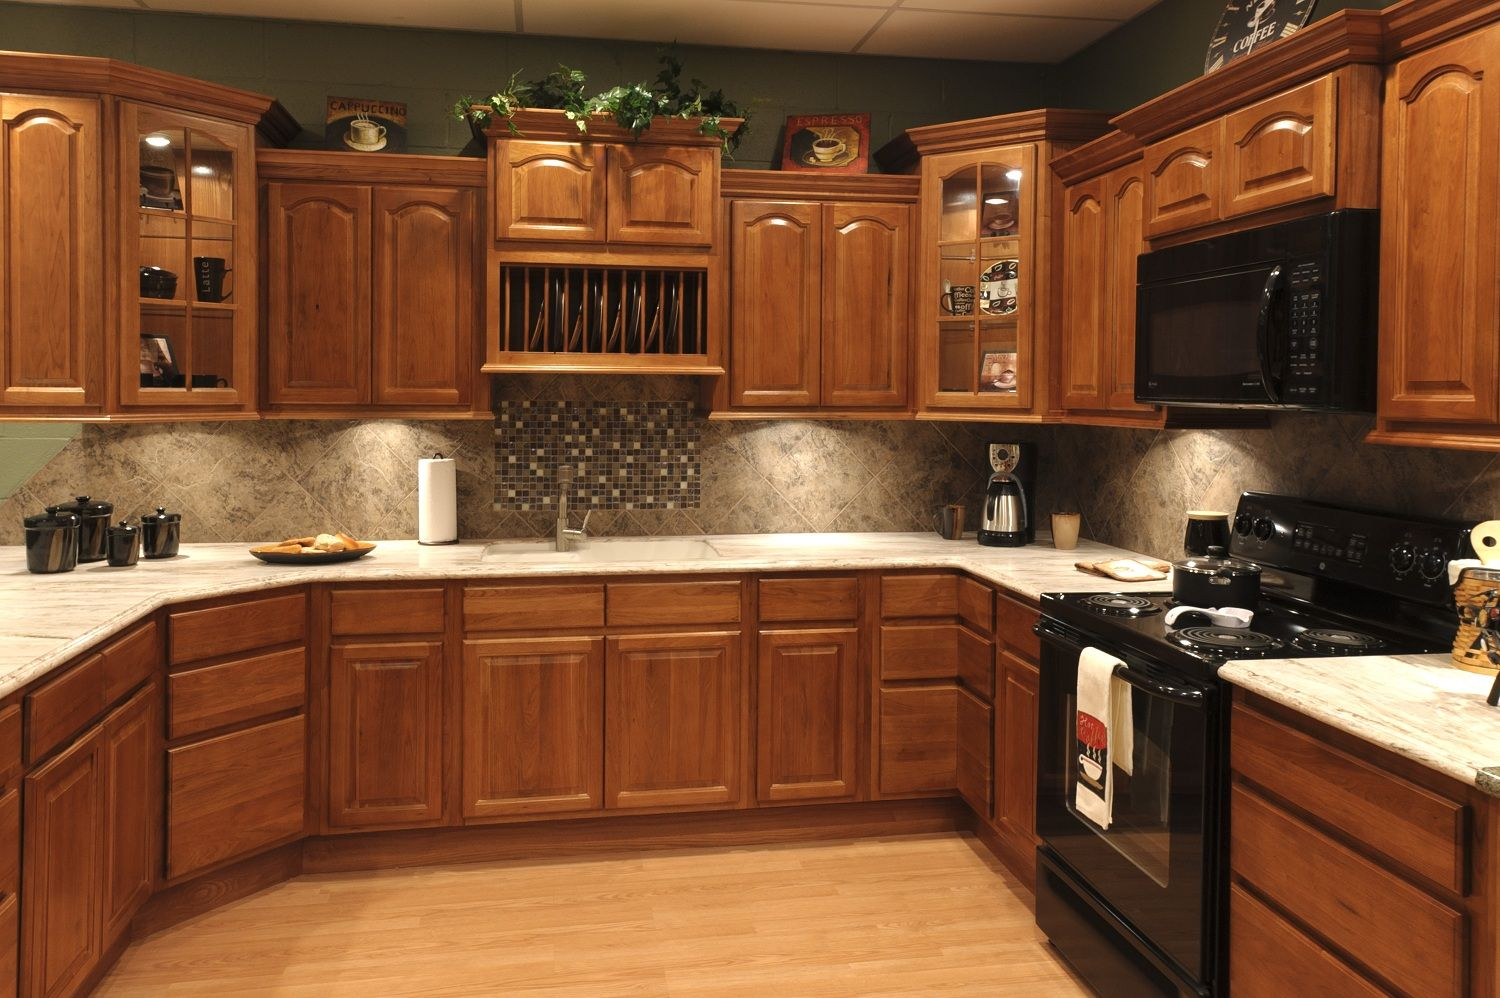 Beautiful kitchen cabinets windy hill hardwoods for Beautiful kitchen ideas pictures